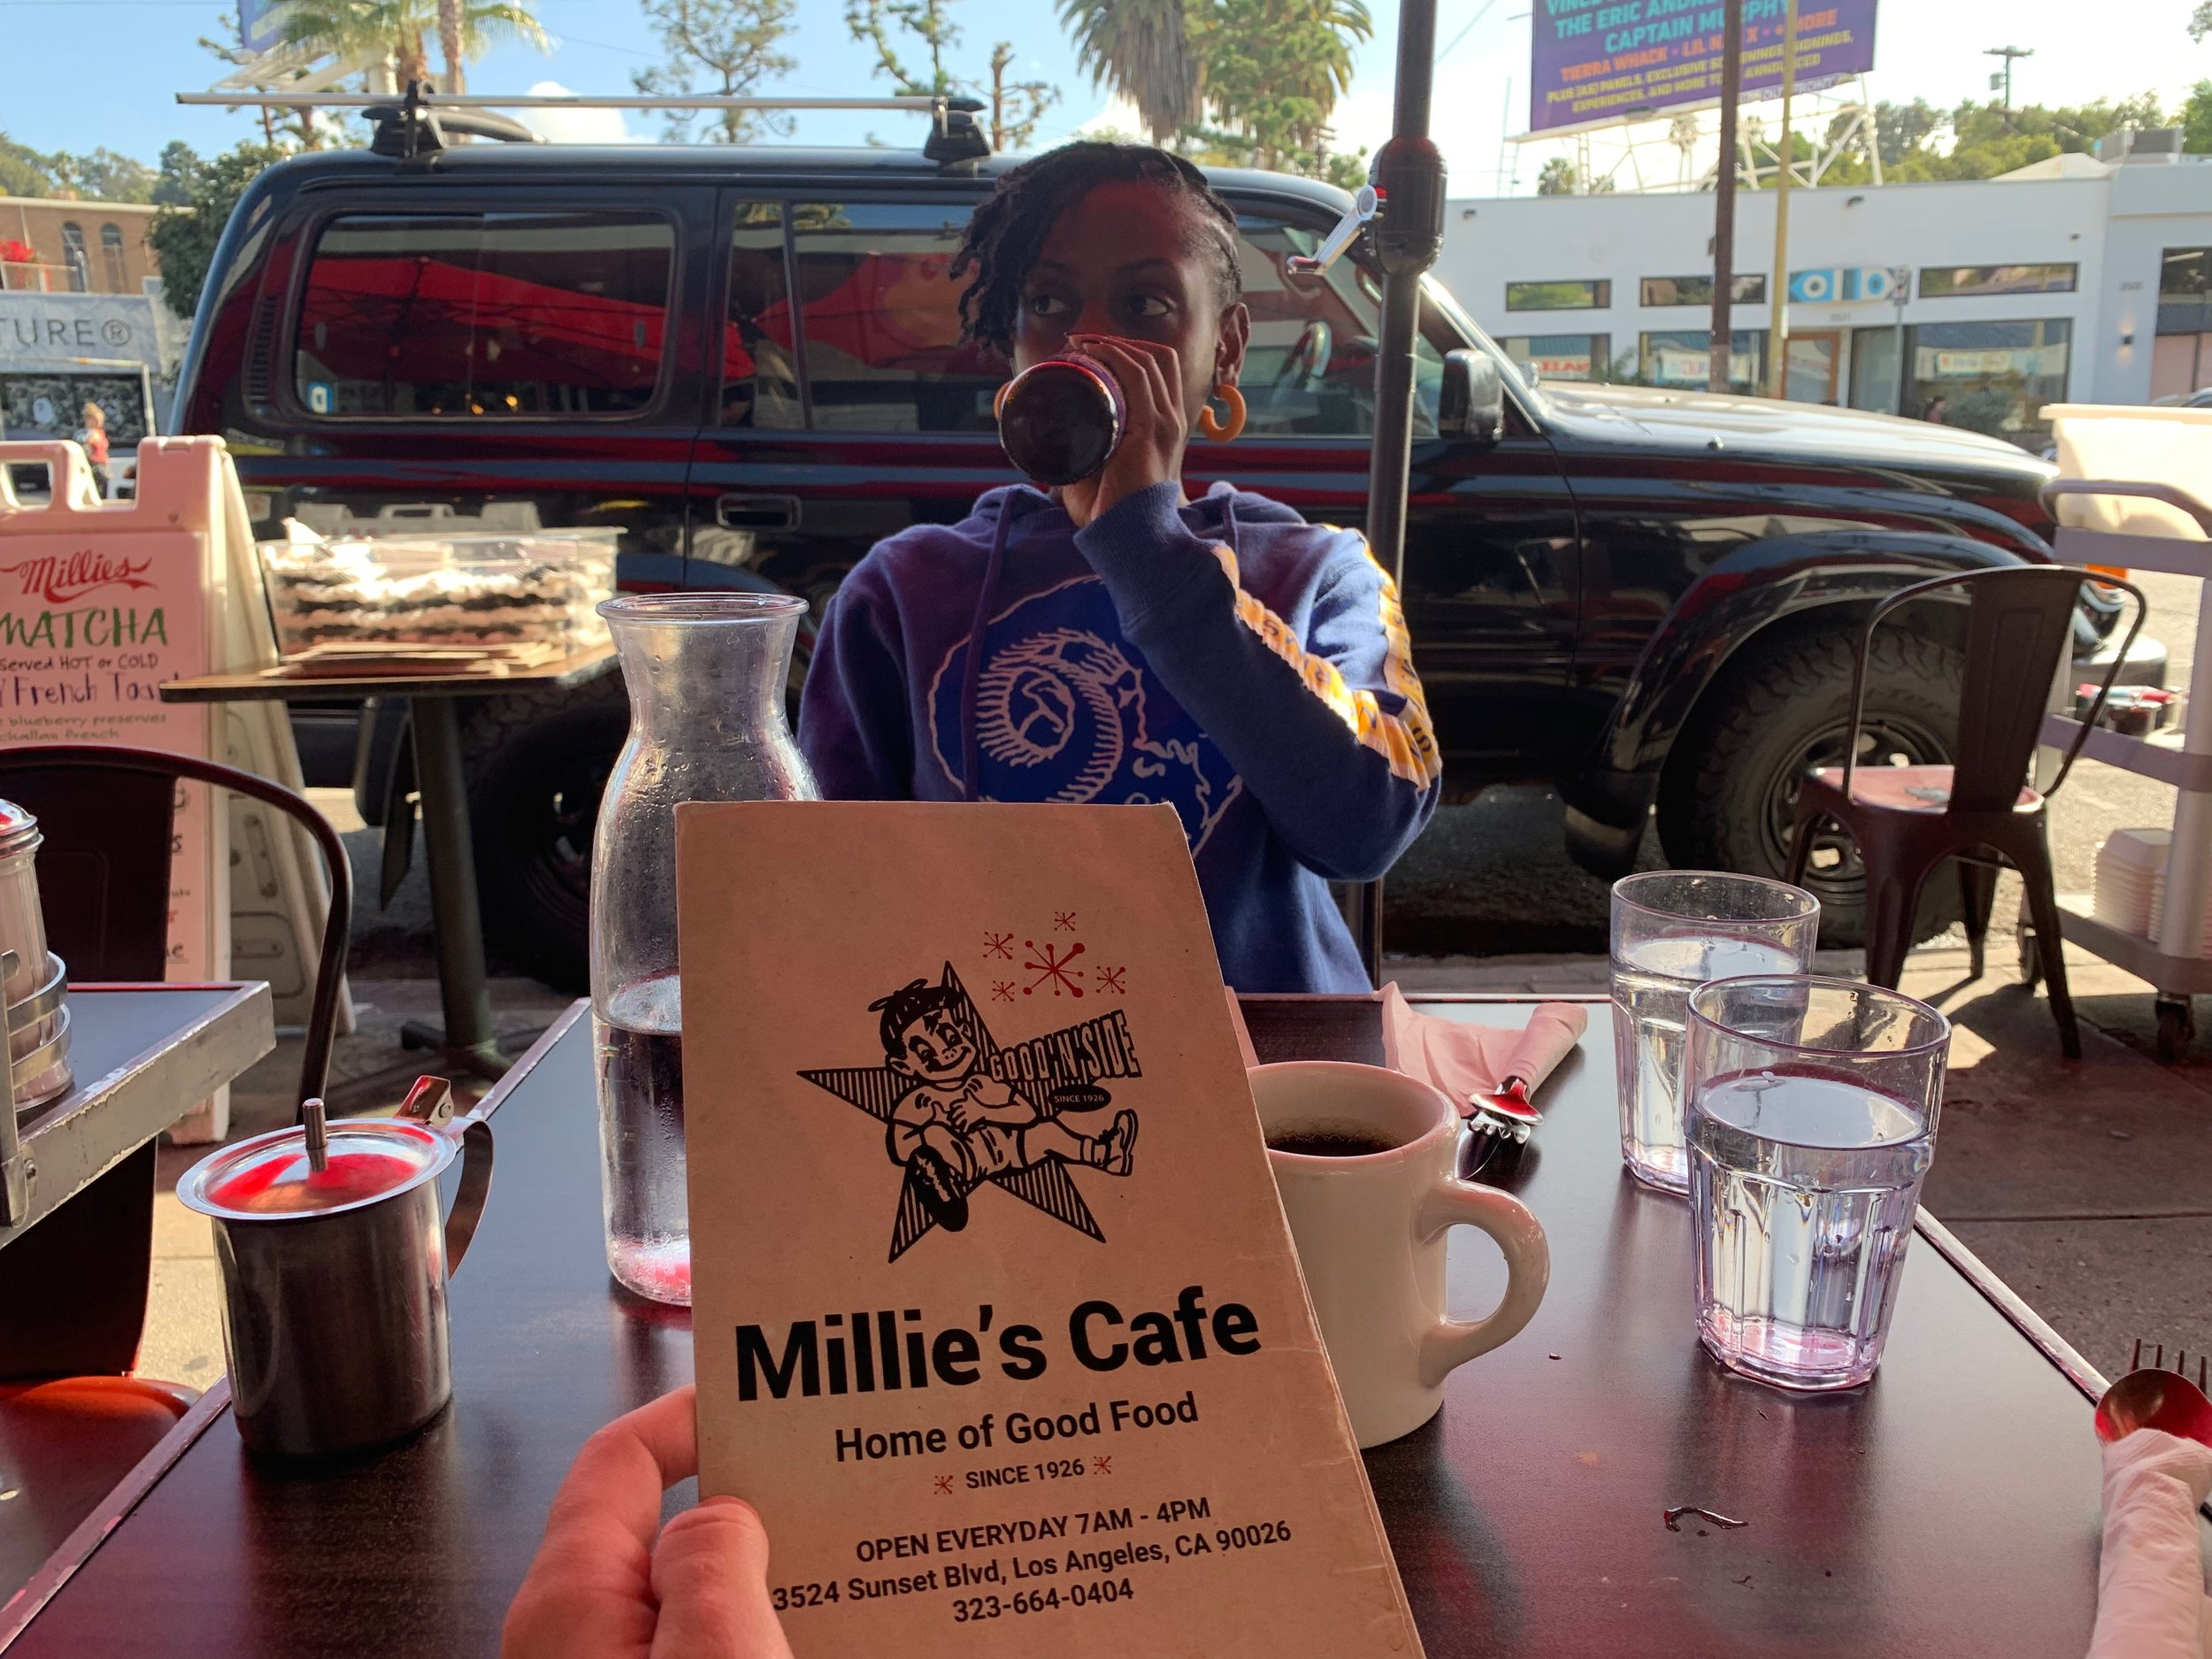 """A staple in the area since the 1920s,  Millie's Cafe  is a popular spot right in the heart of the neighborhood. While they're only open until 4 p.m, breakfast is served all day and they have some oh-so-delicious options, including their tacos de huevos and the """"slutty bun"""" (scrambled eggs, cheddar, caramelized onions and sriracha mayo on a brioche bun). Of course, they also have a vegan menu."""